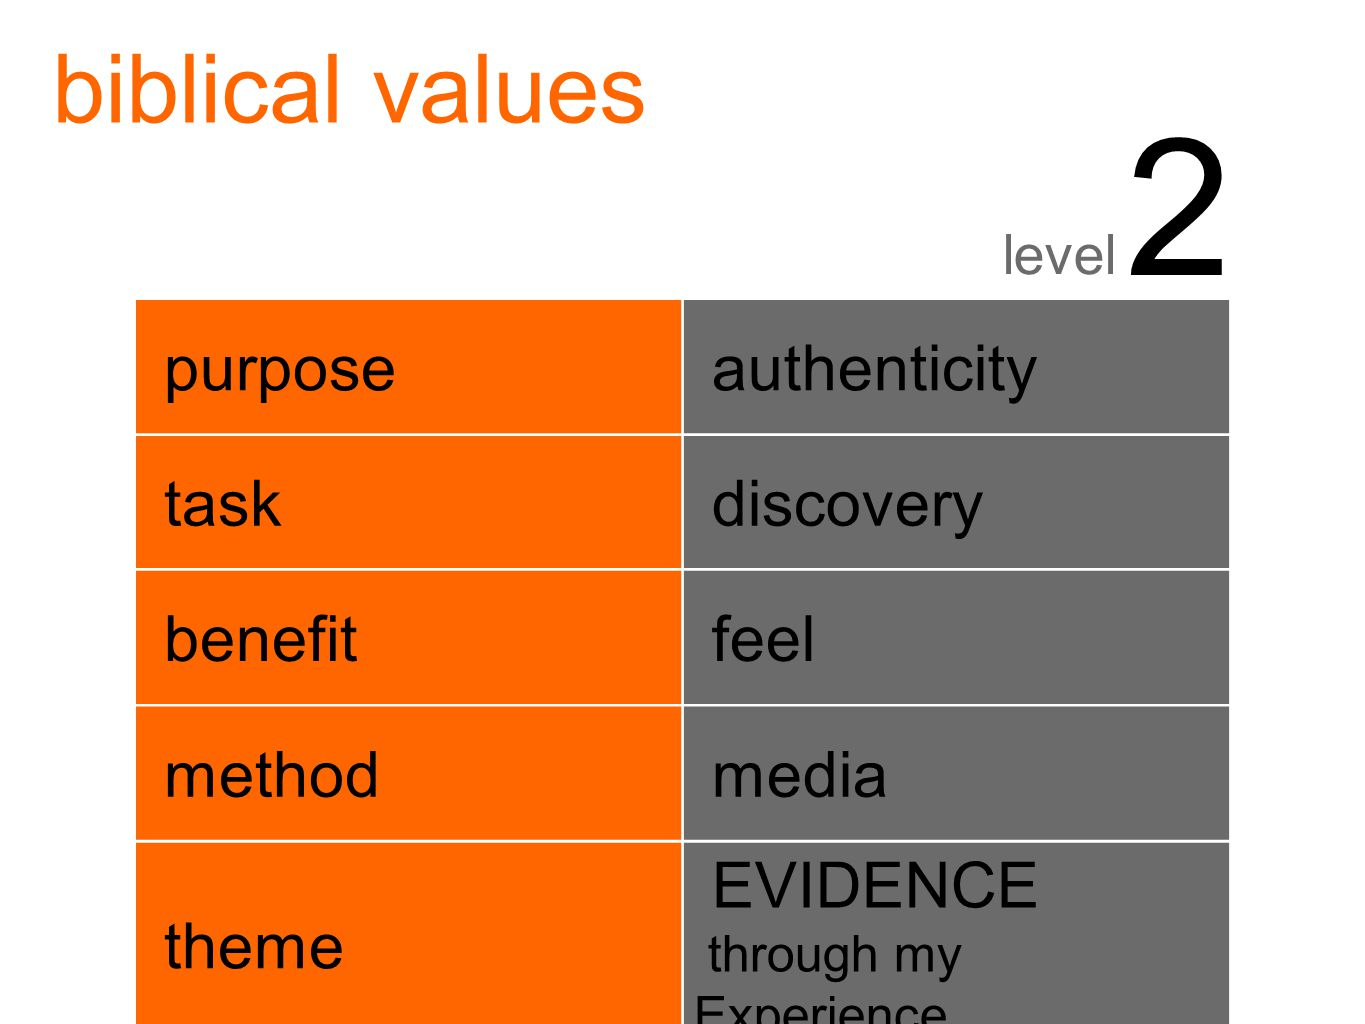 biblical values level 2 purpose authenticity task discovery benefit feel method media theme EVIDENCE through my Experience